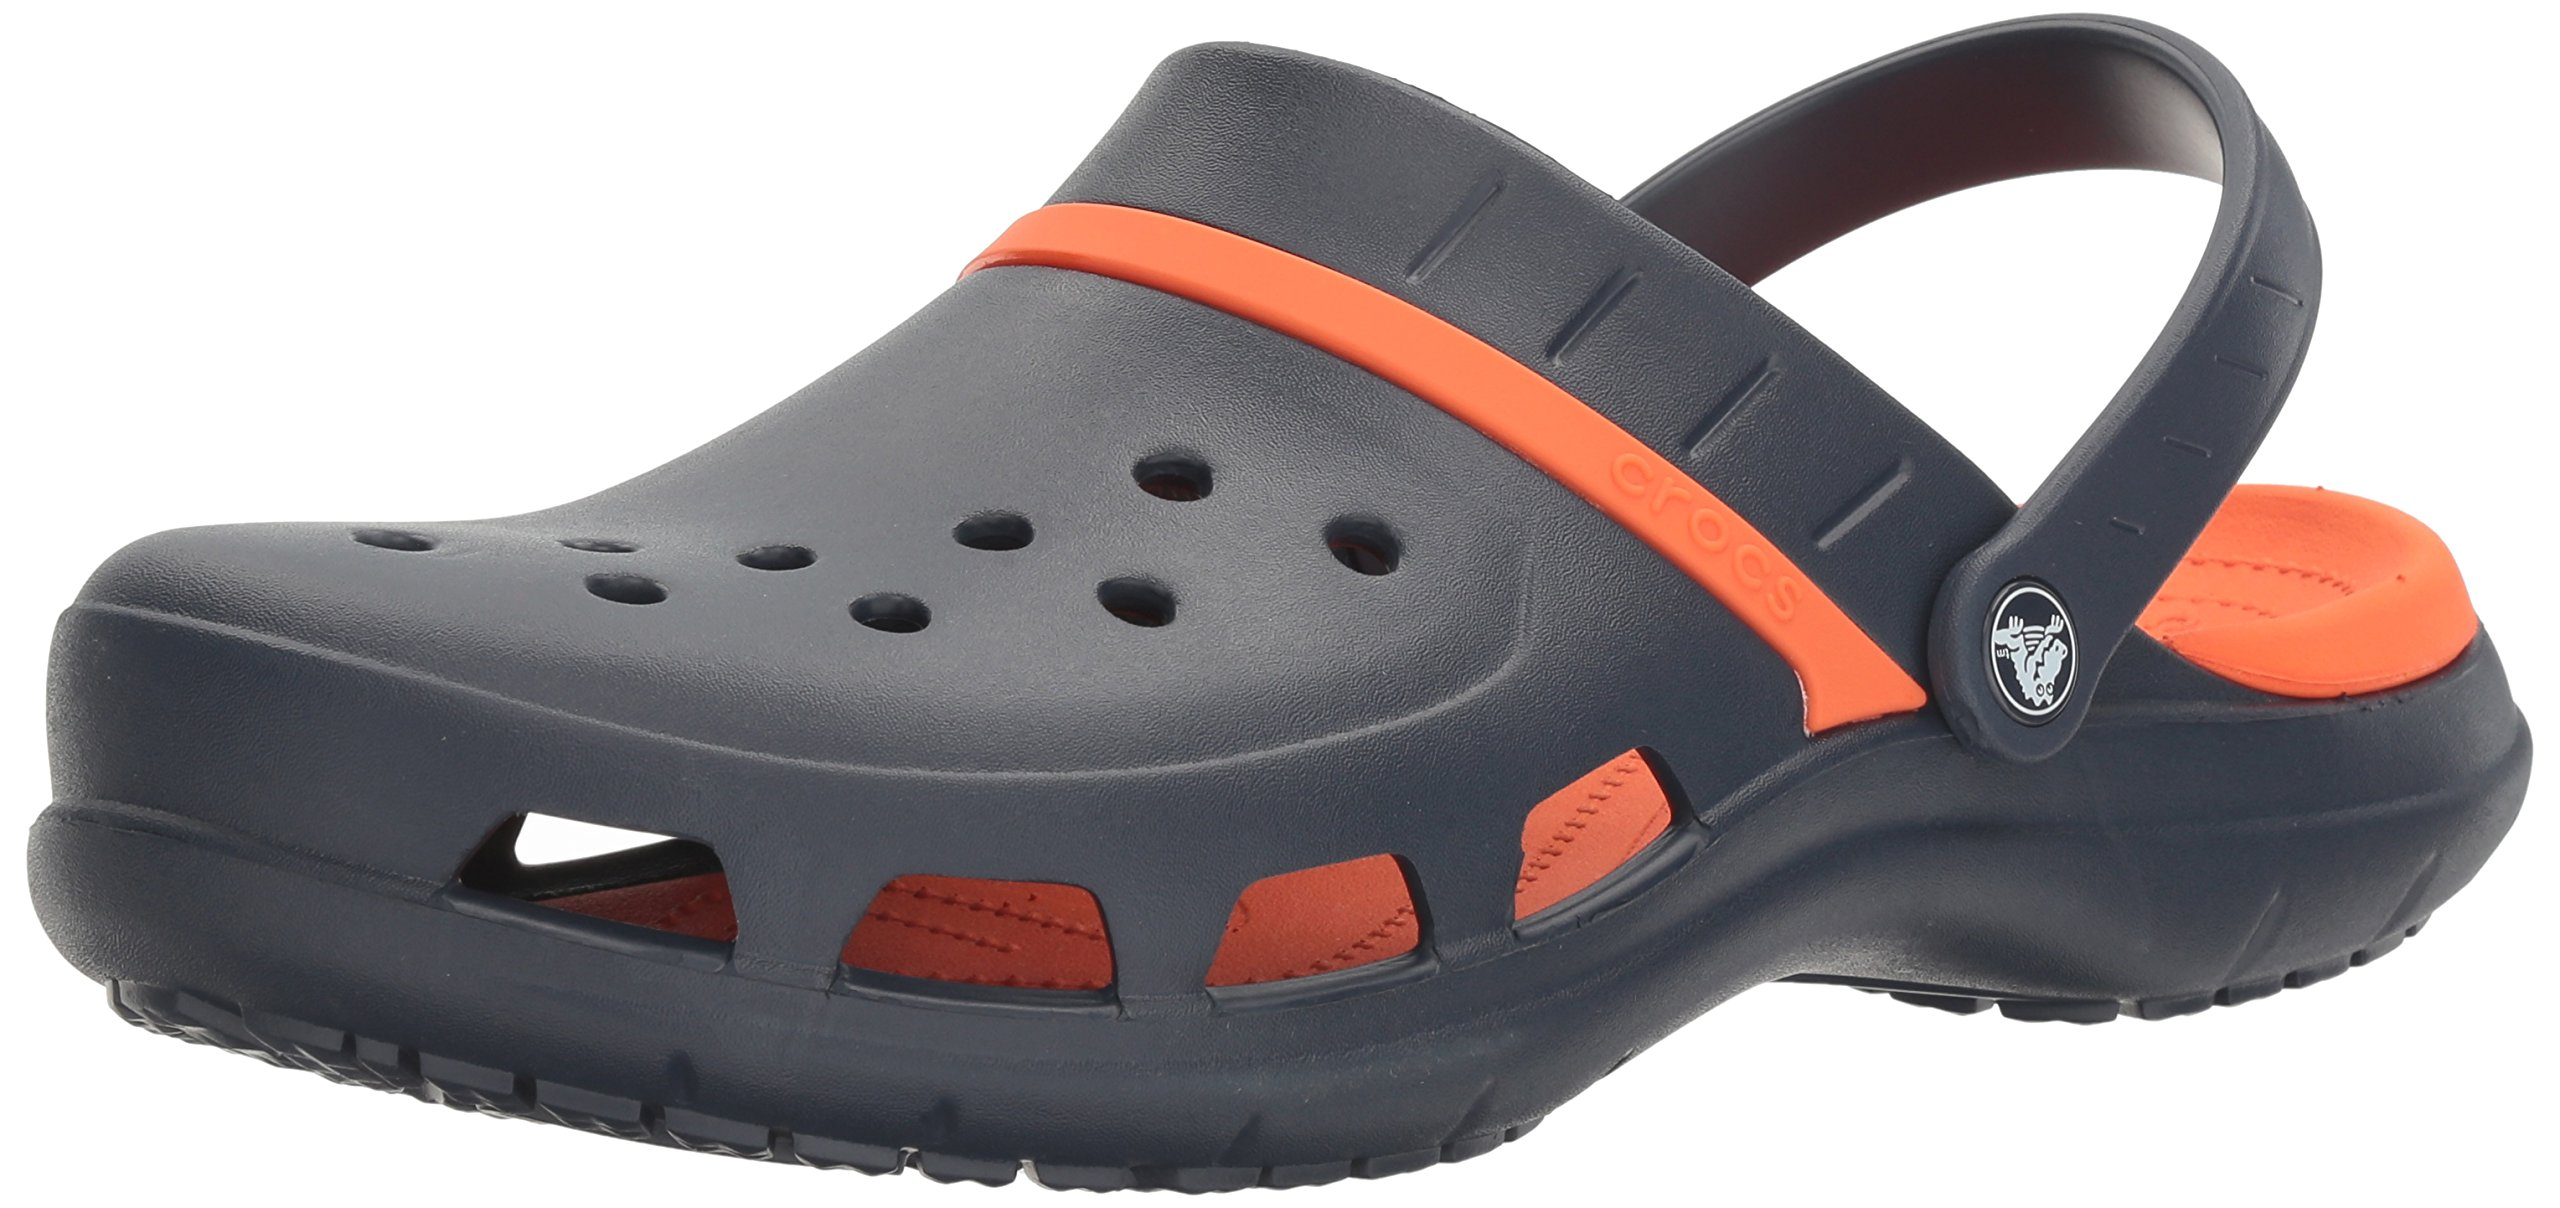 Crocs Unisex Modi Sport Clog Mule, Navy/Tangerine, 6 US Men / 8 US Women by Crocs